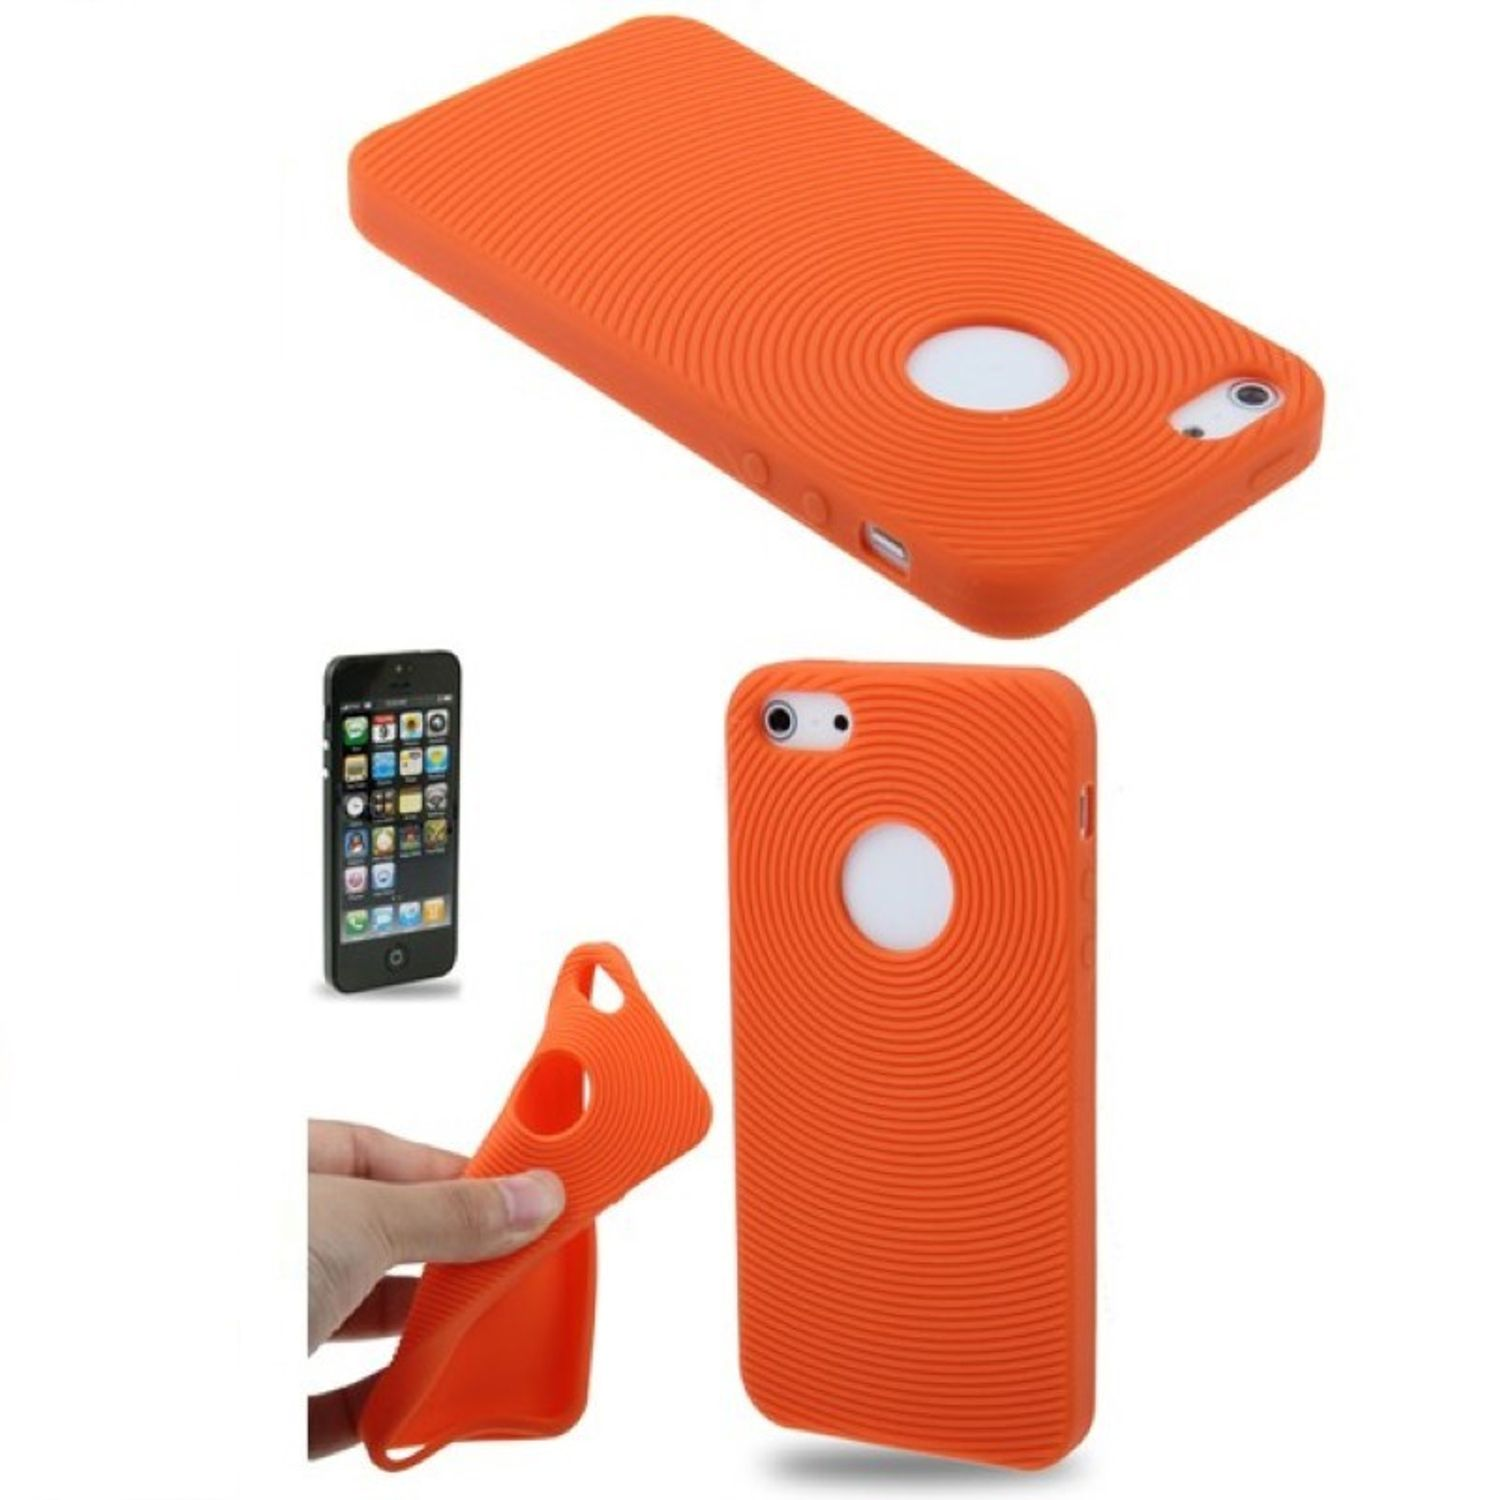 schutzh lle silikon h lle f r handy iphone 5 5s orange. Black Bedroom Furniture Sets. Home Design Ideas